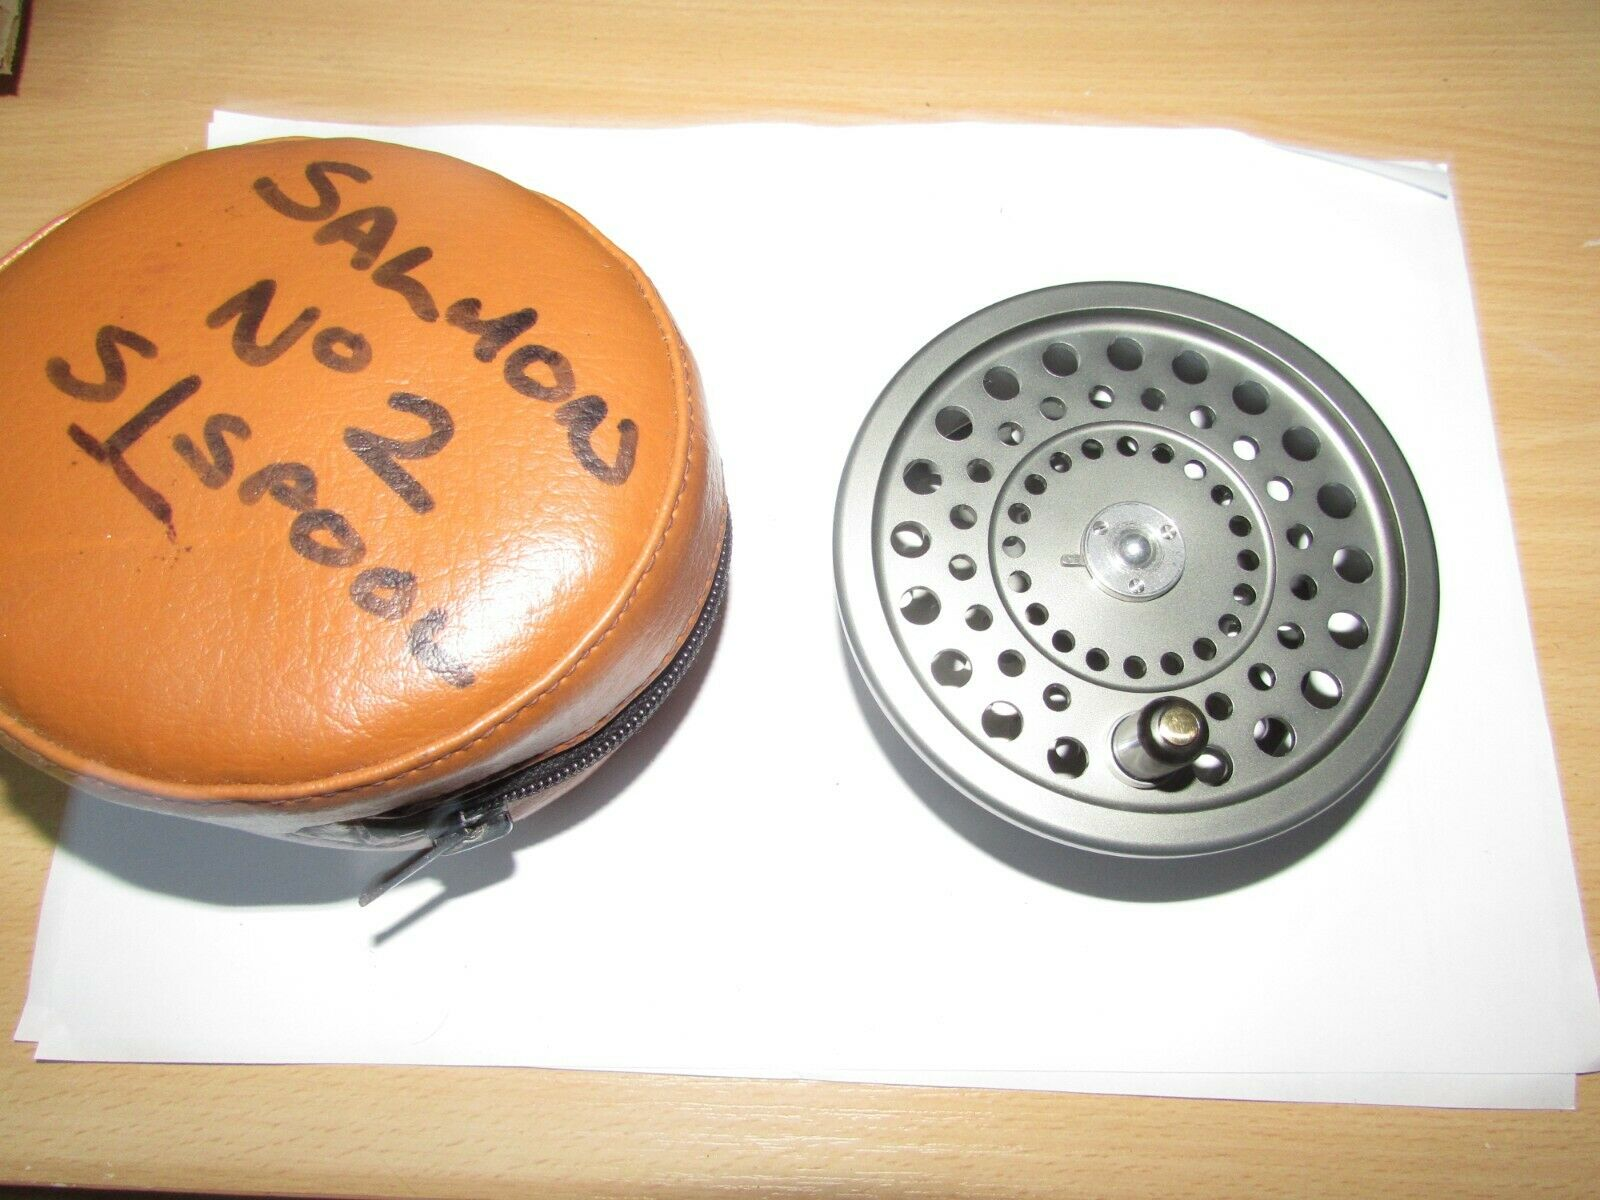 A1 hardy marquis no. 2 spool for LWT lightweight salmon fly fishing reel & case